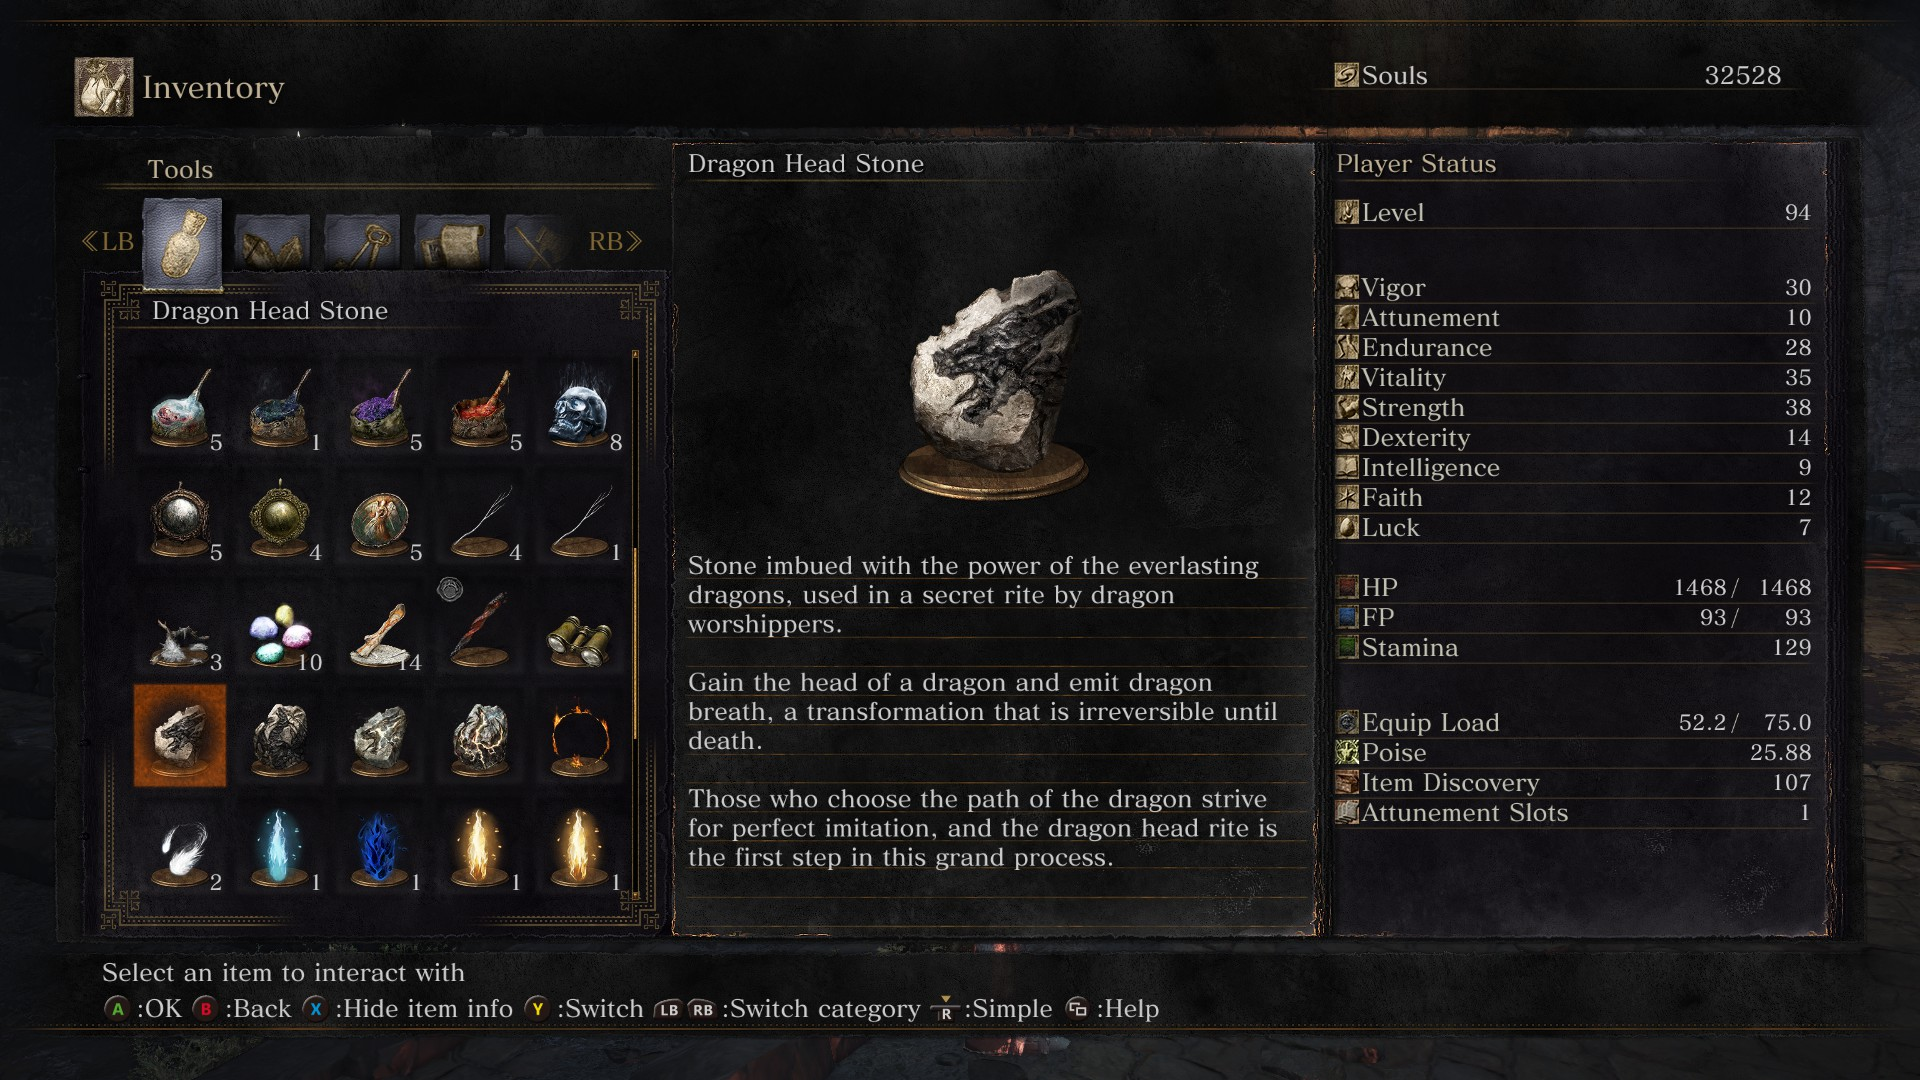 Give Dark Souls A Dark Souls 3 UI Makeover With This Mod